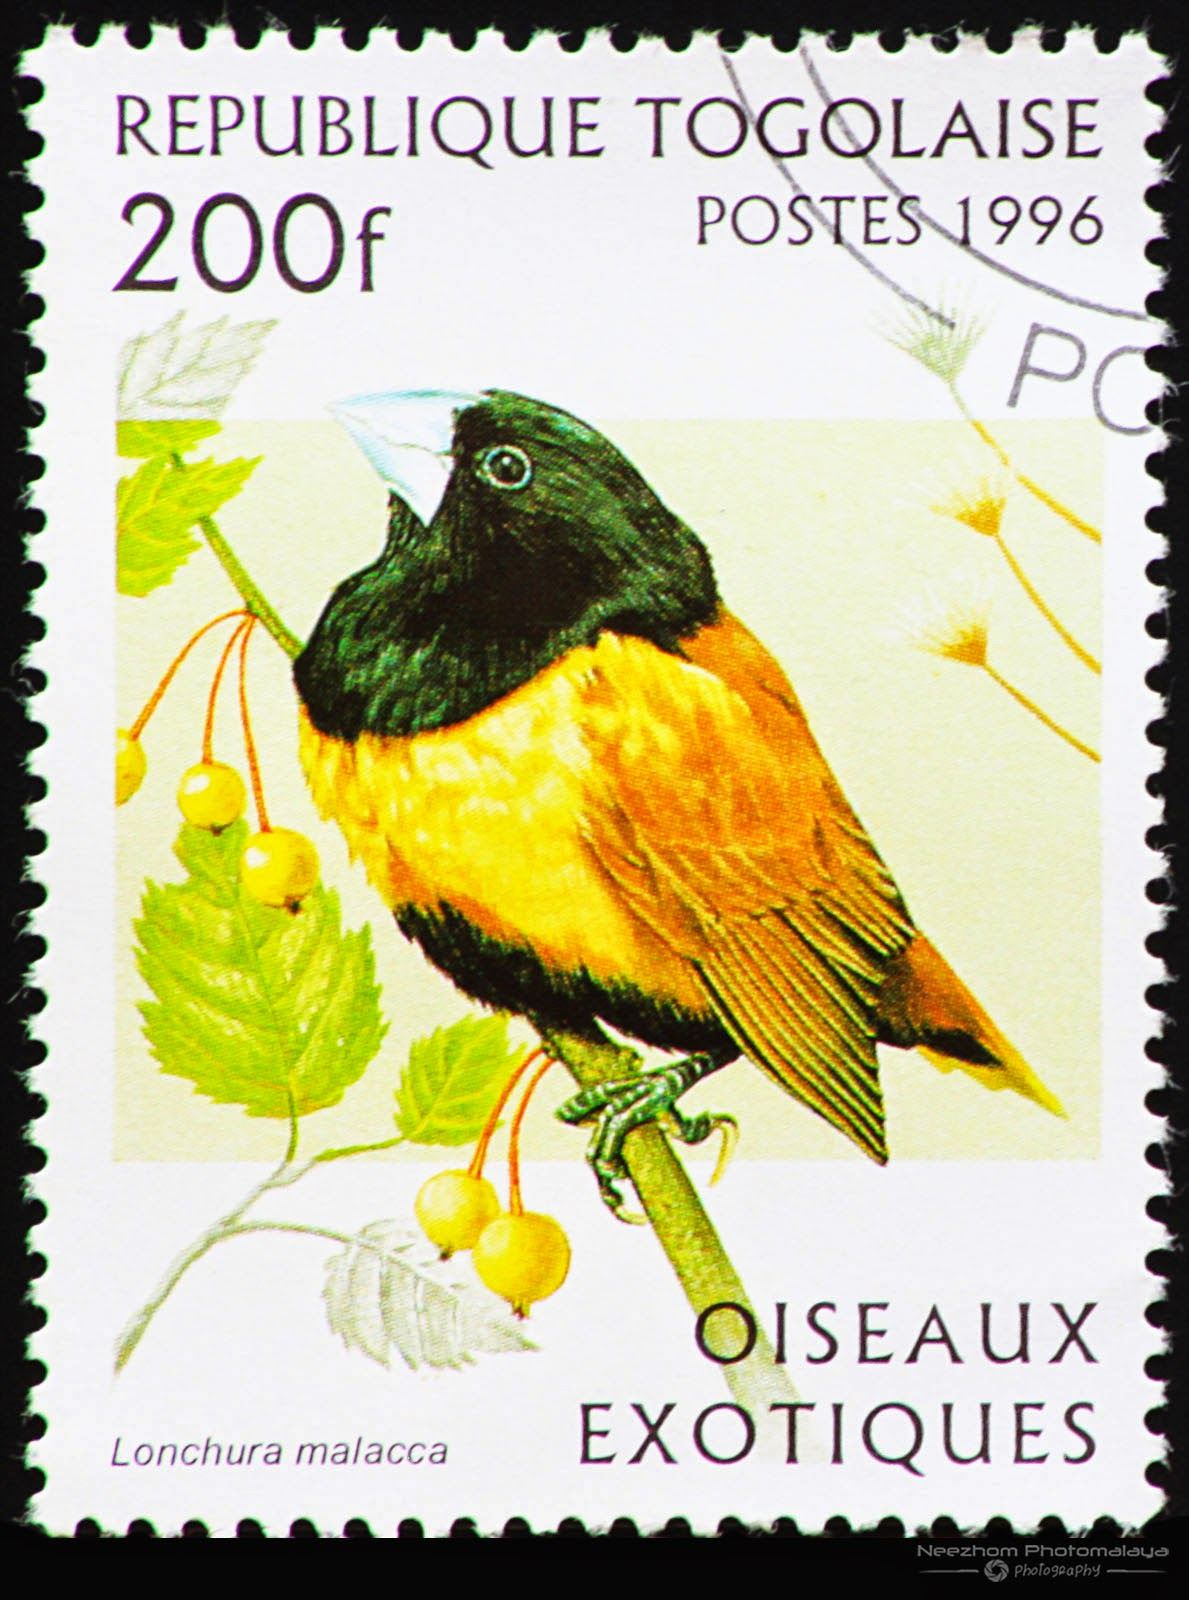 Togo 1996 Exotic Birds stamp - Tricoloured Munia (Lonchura malacca) 200 f